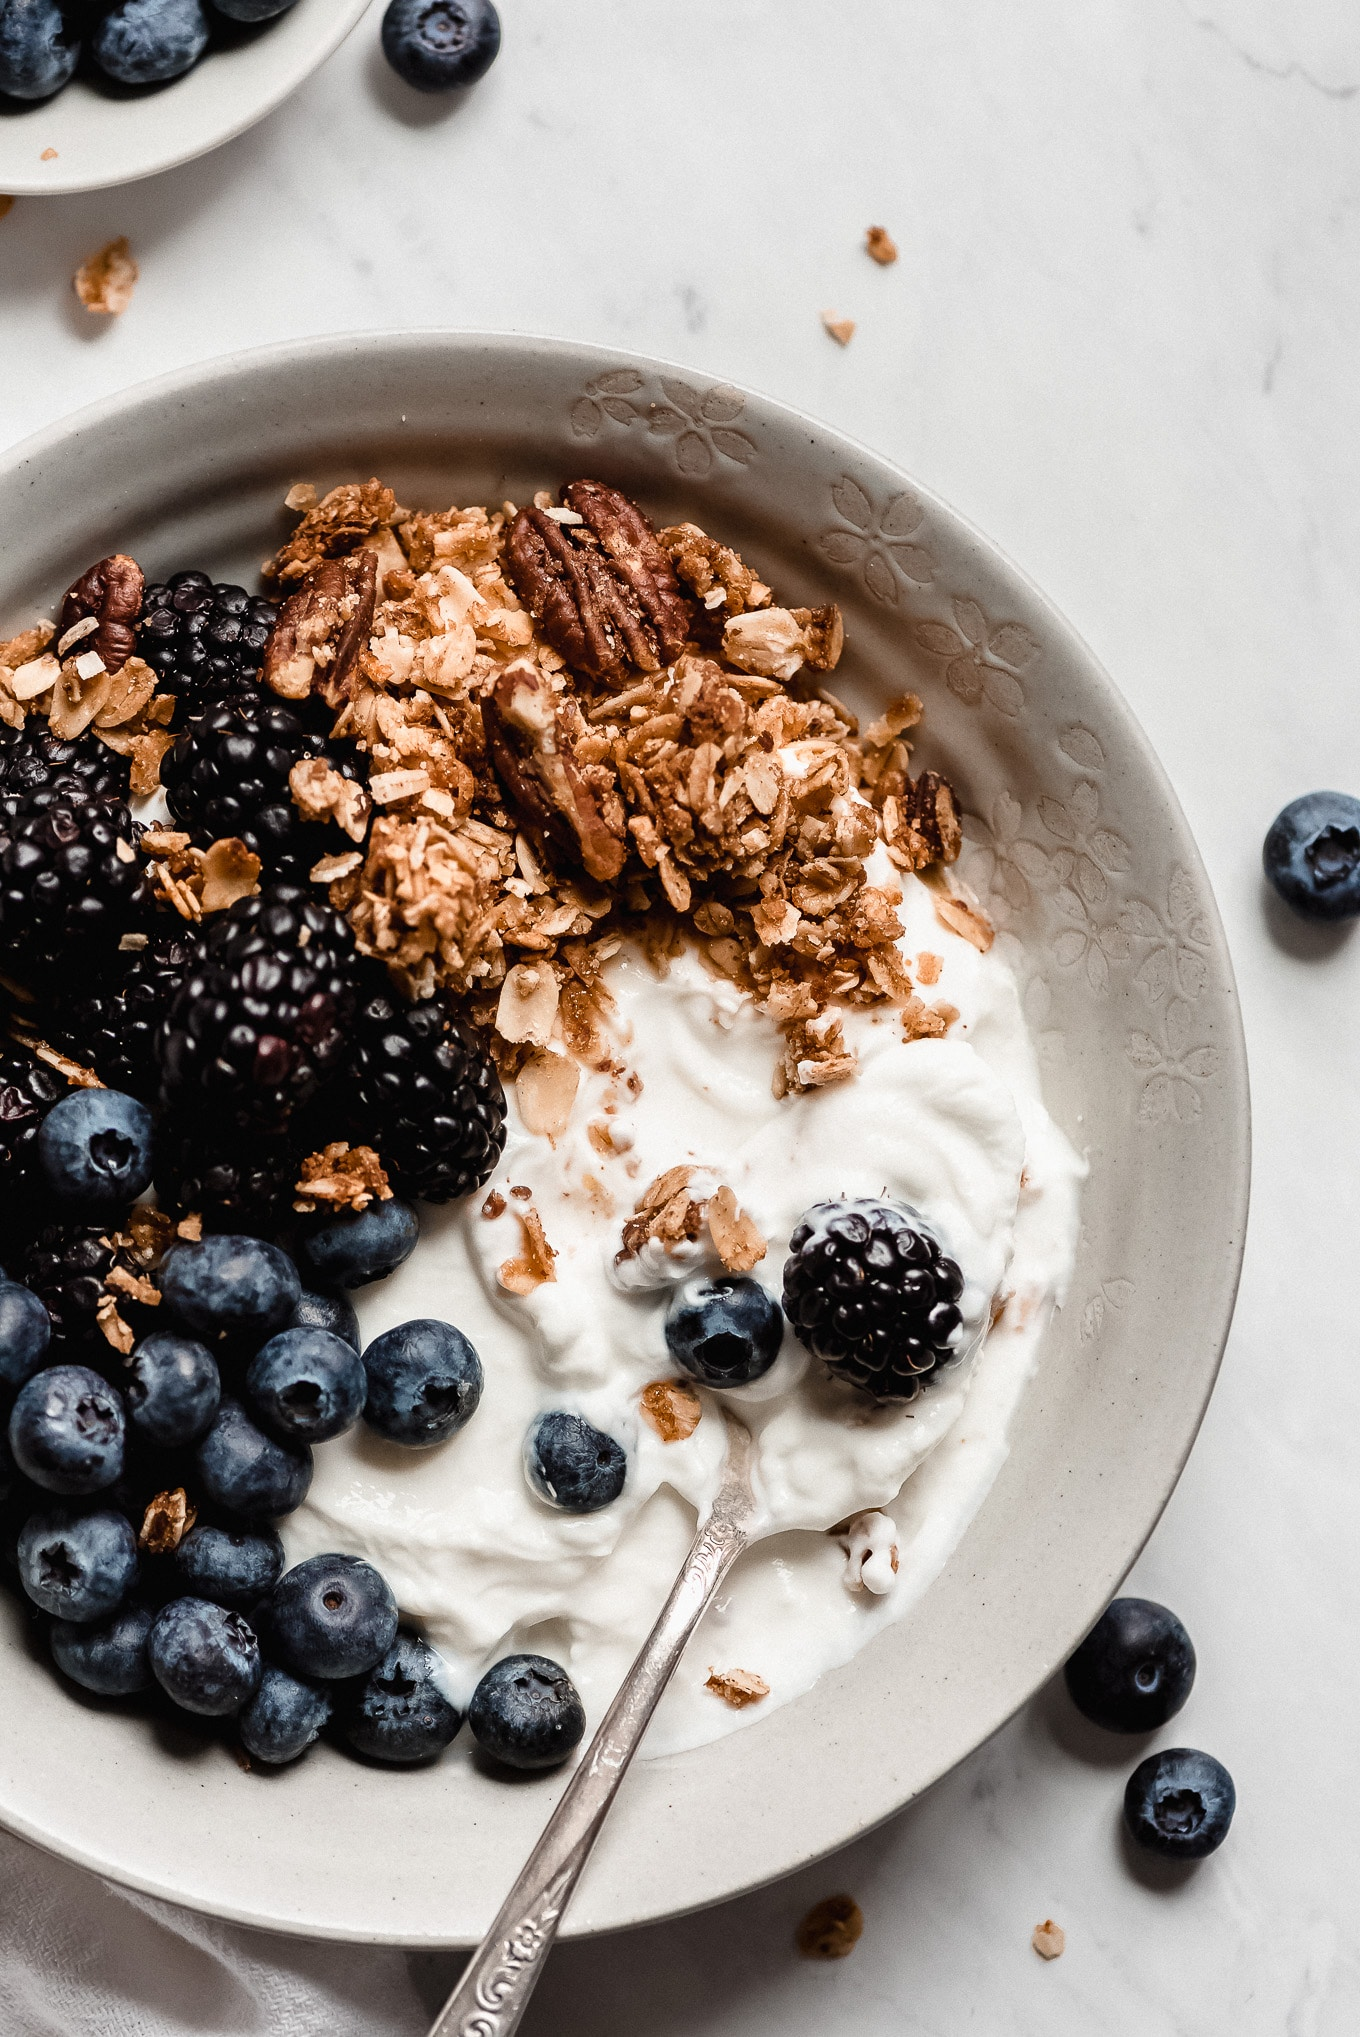 Greek yogurt bowl topped with homemade granola, blueberries, and blackberries.